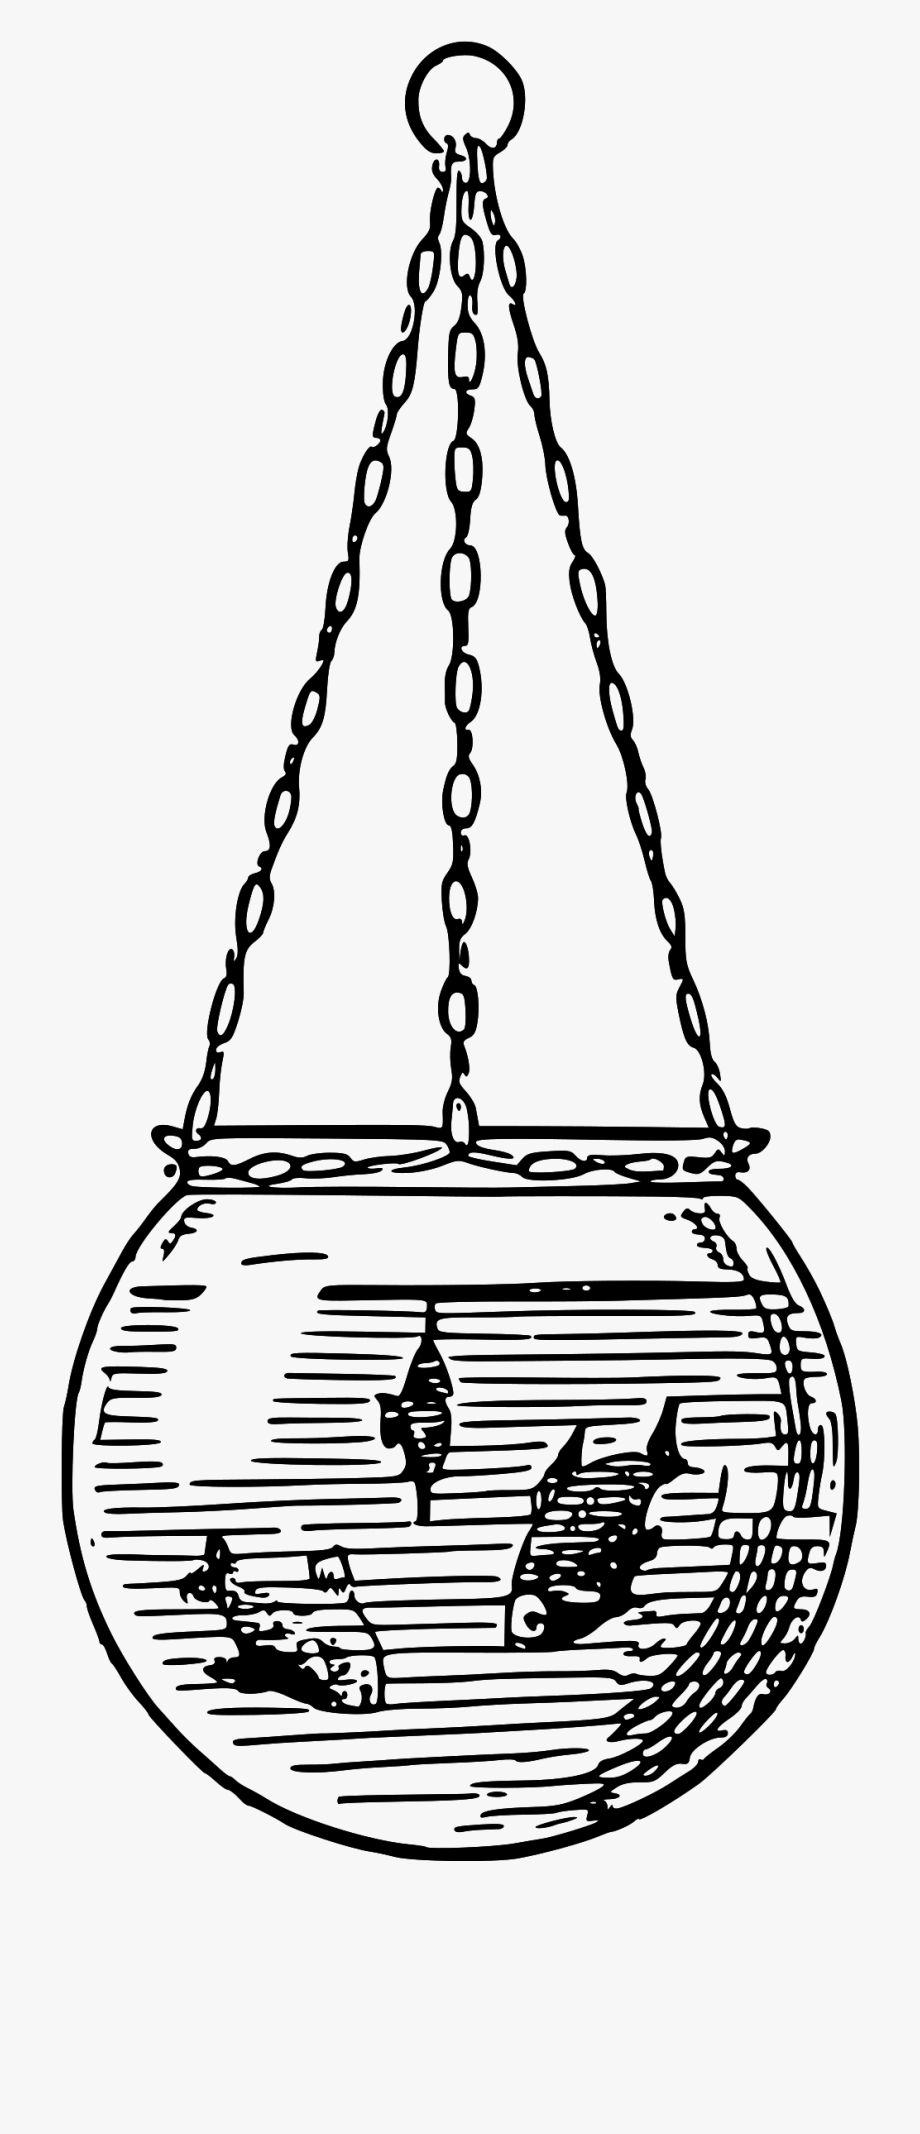 Fishbowl clipart cage. Black and white shoulder